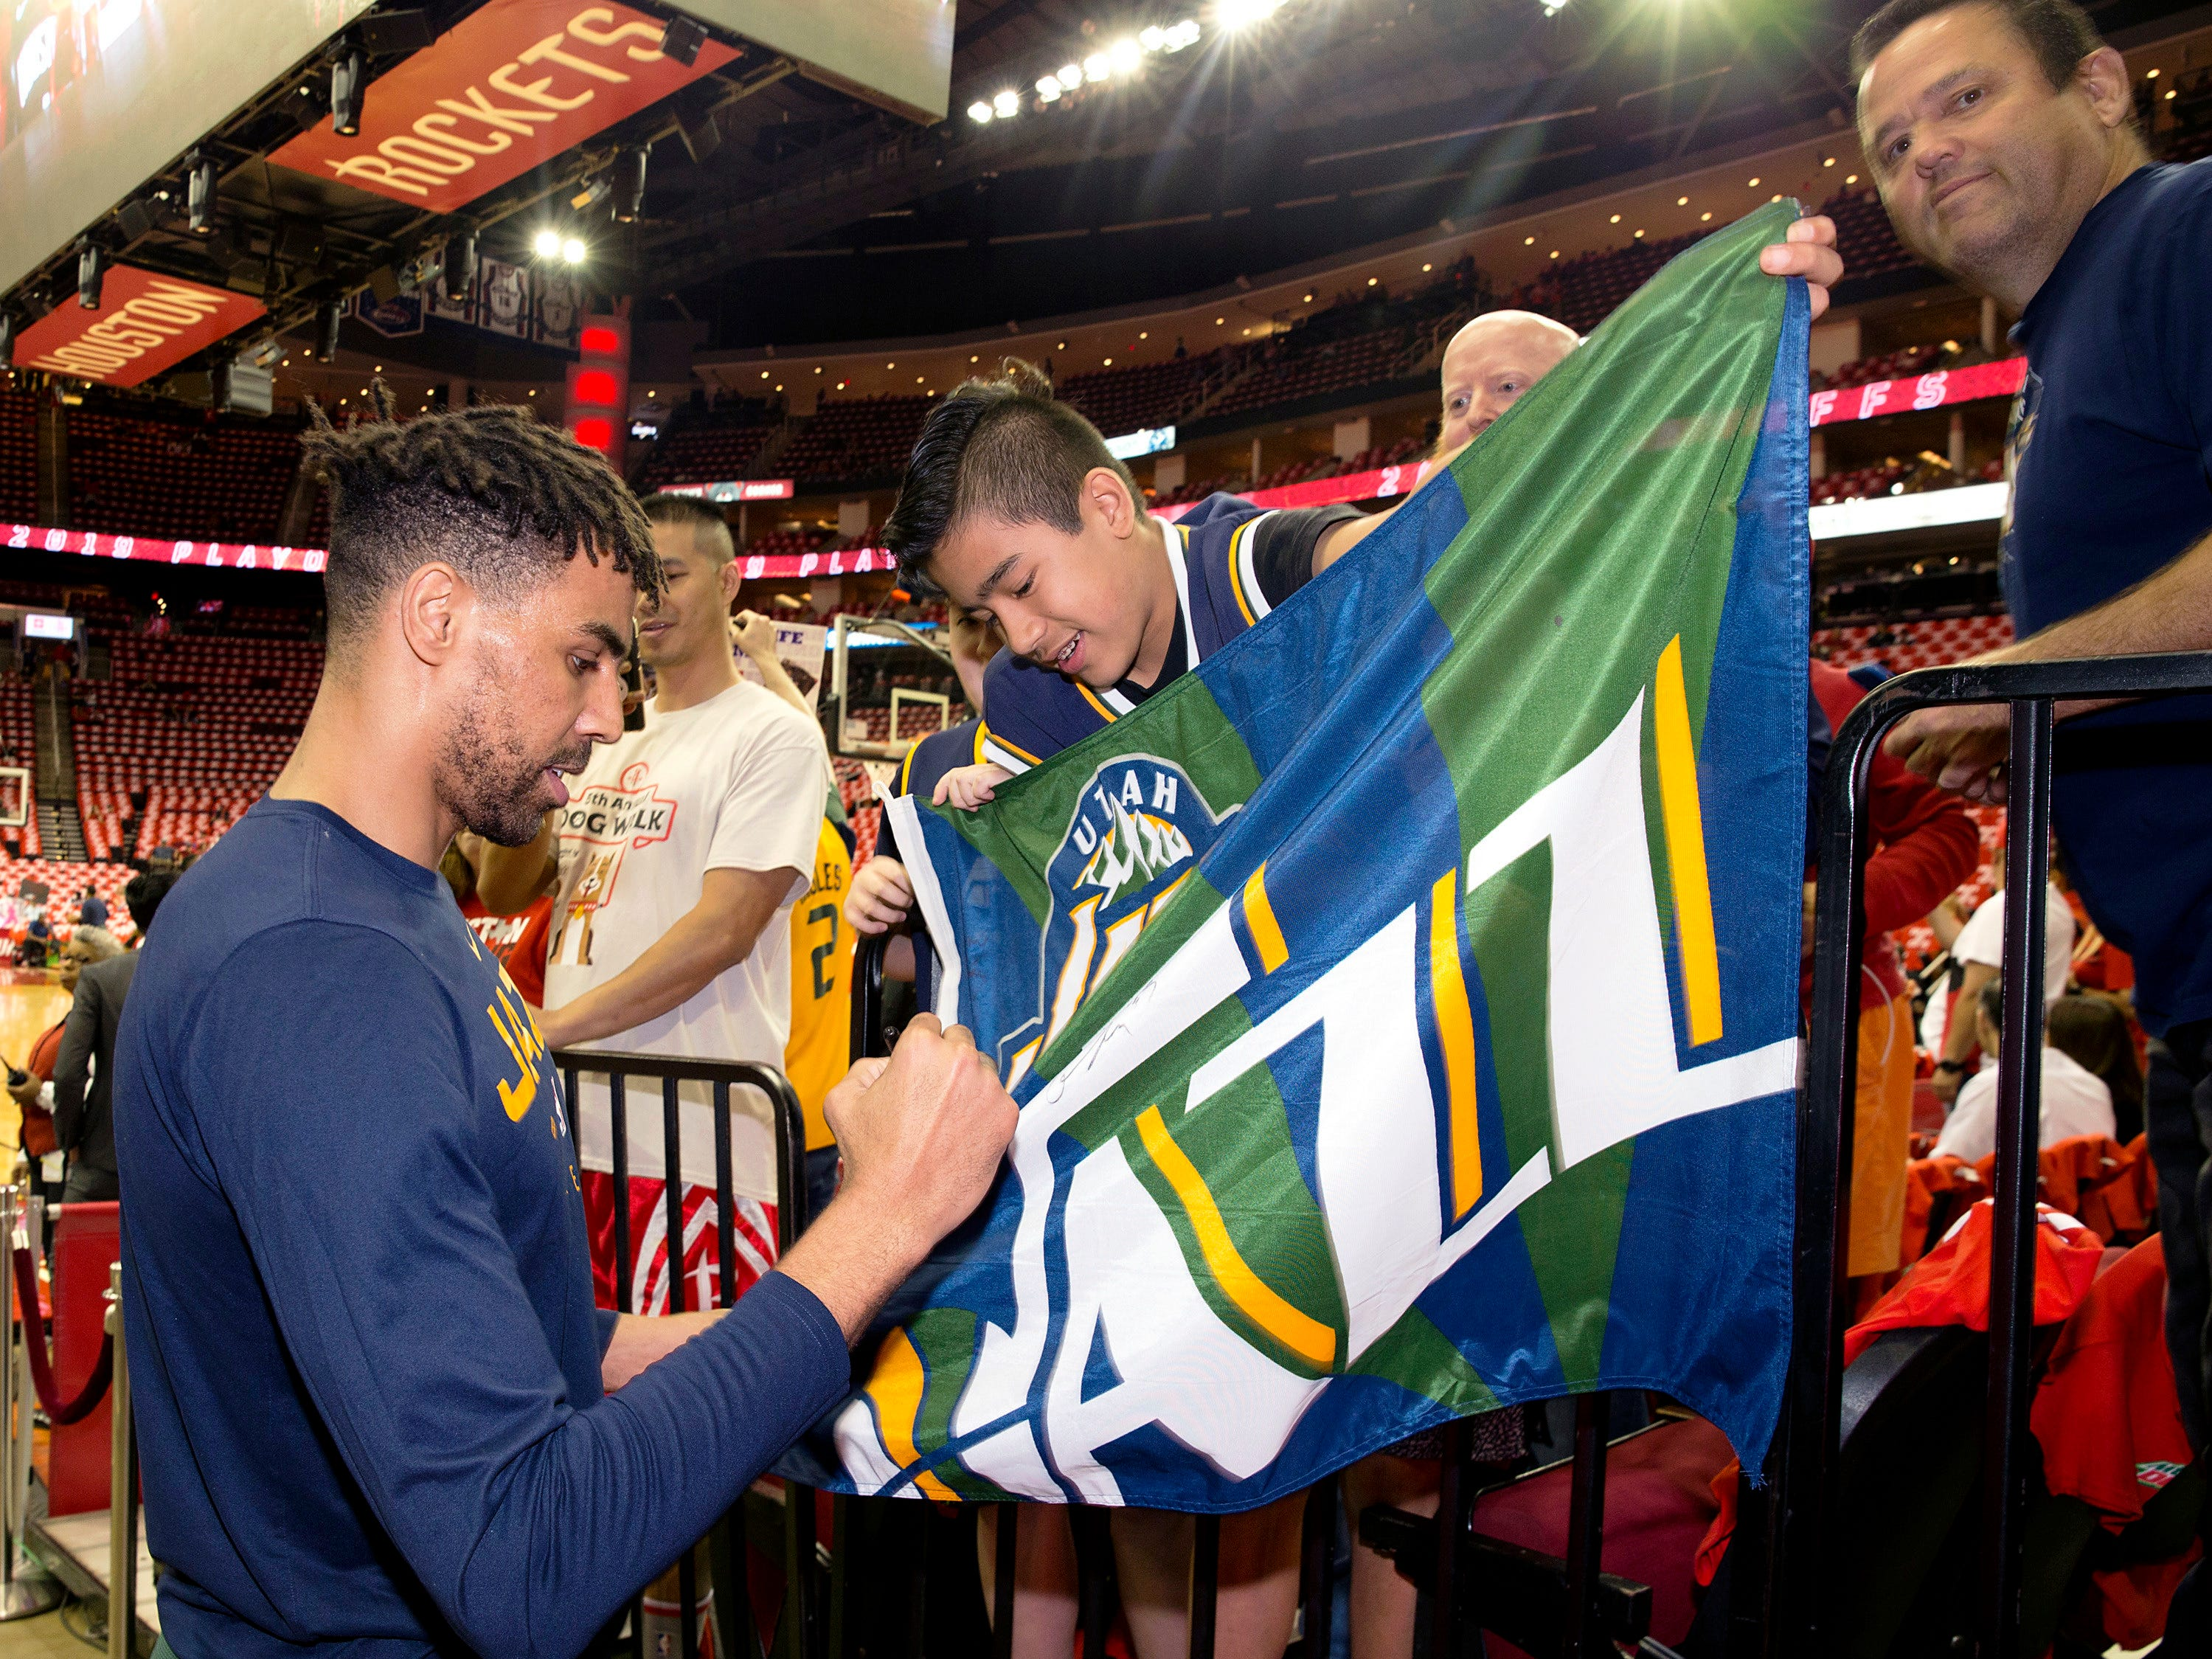 April 17: Jazz forward Thabo Sefolosha signs a fan's banner before Game 2 against the Rockets in Houston.